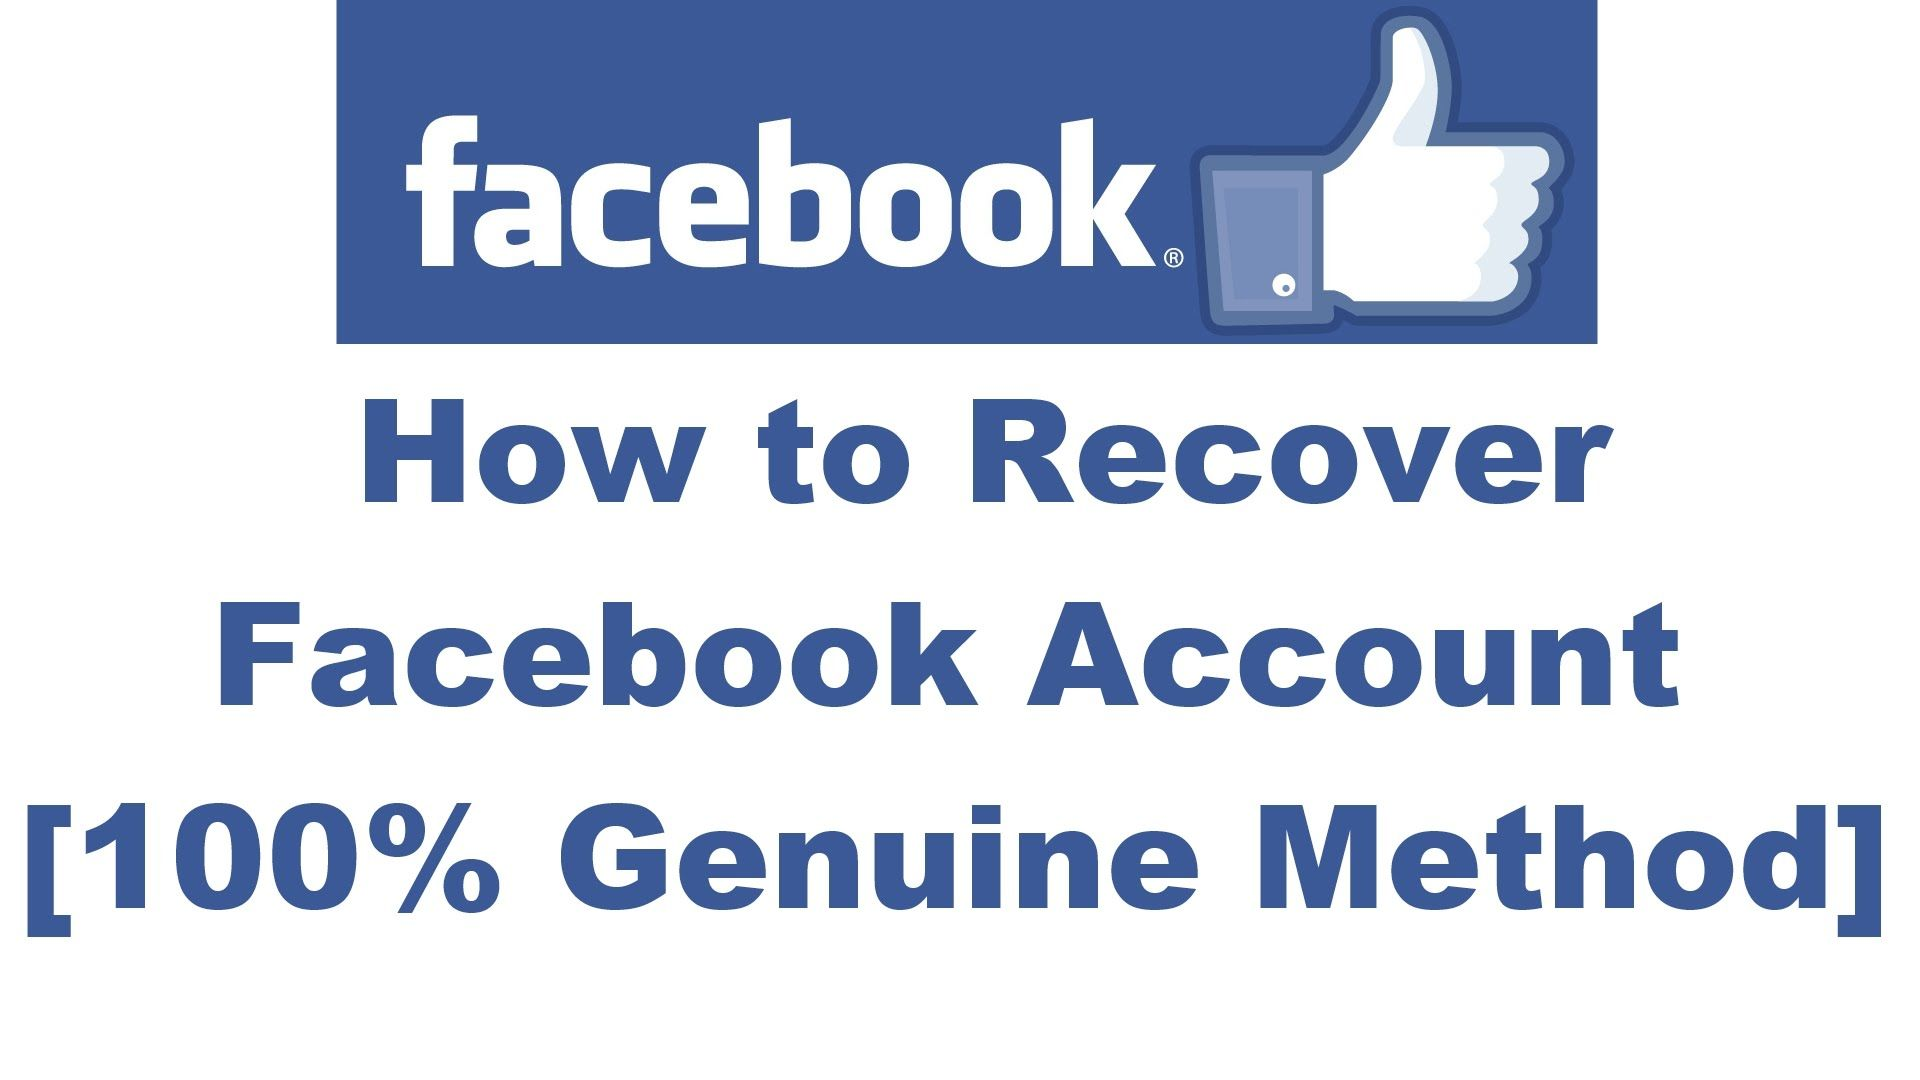 Socialmedia How To Recover Your Facebookaccount Step By Step